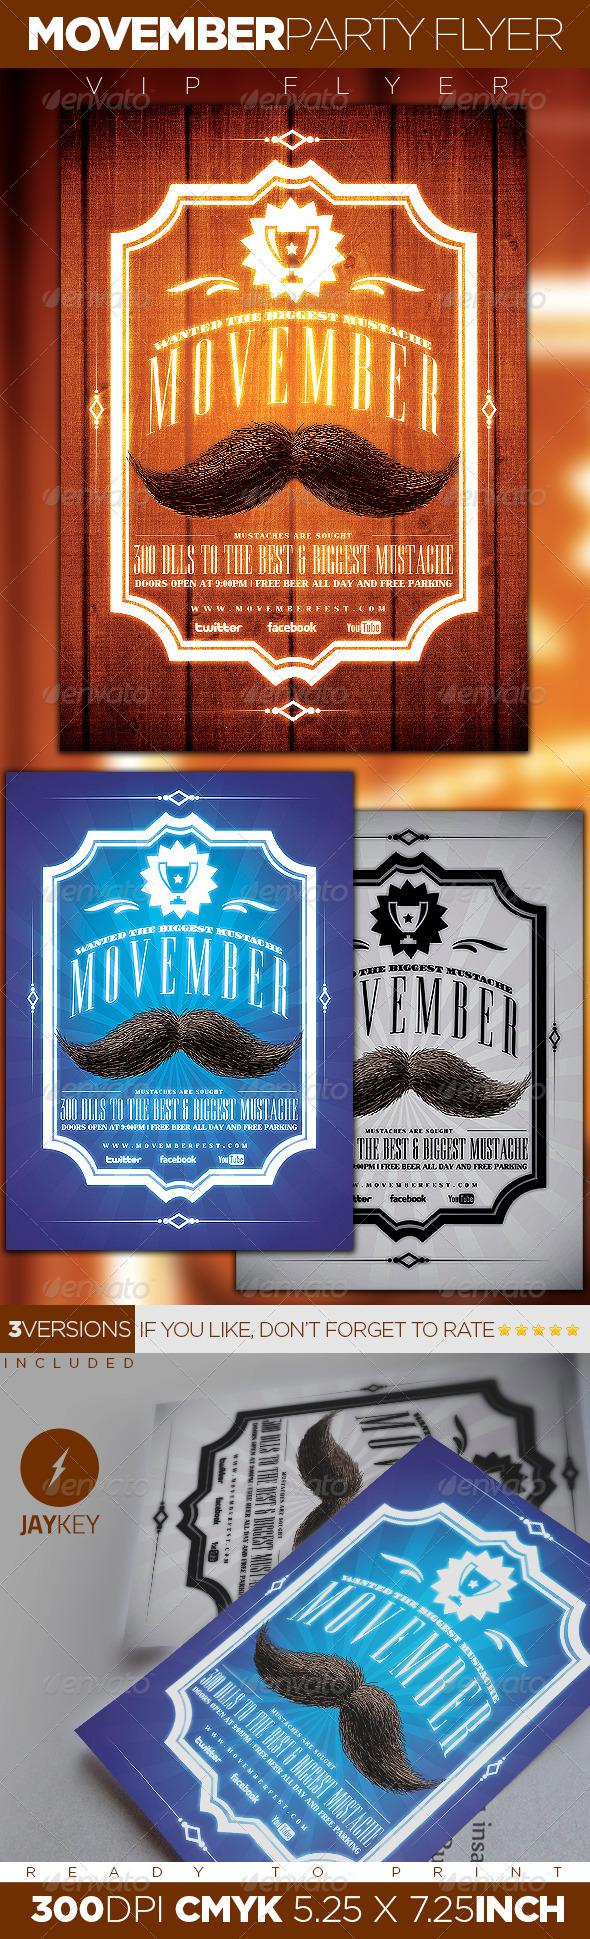 Movember Party Flyer